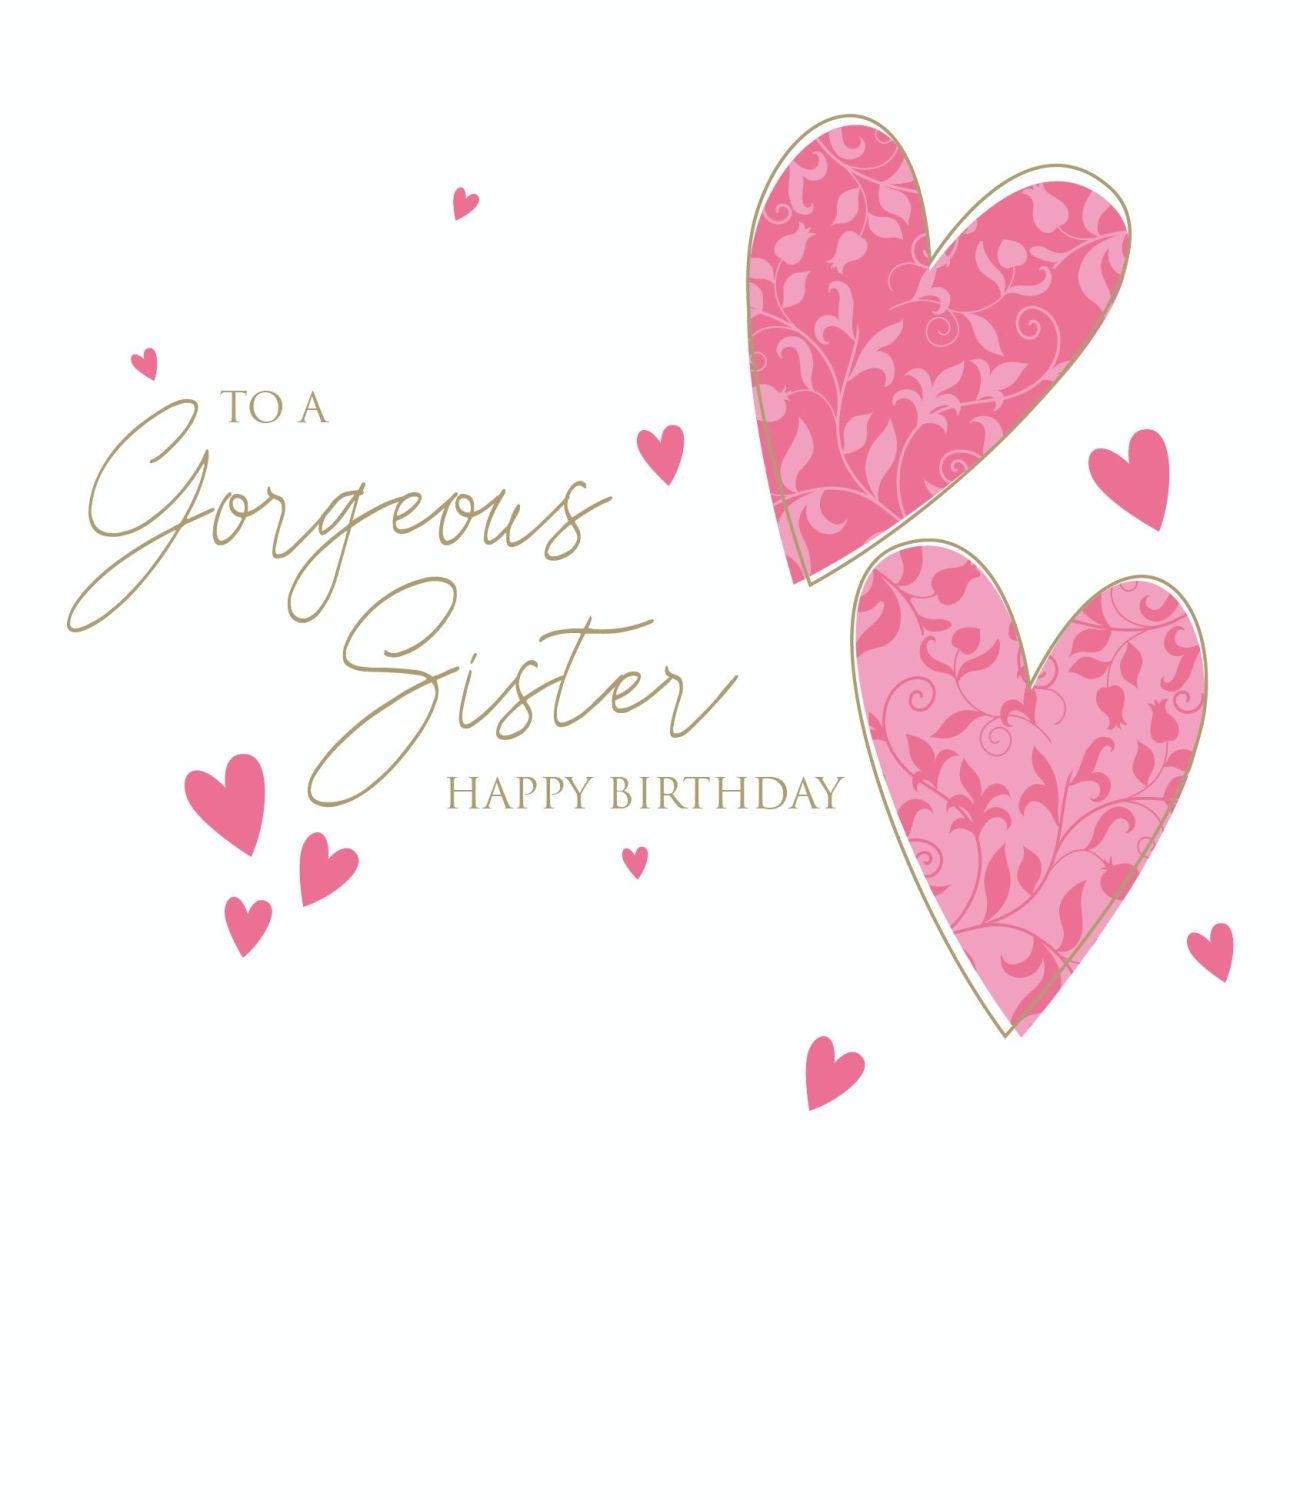 Birthday Cards For Sisters - To A GORGEOUS Sister - Happy ...